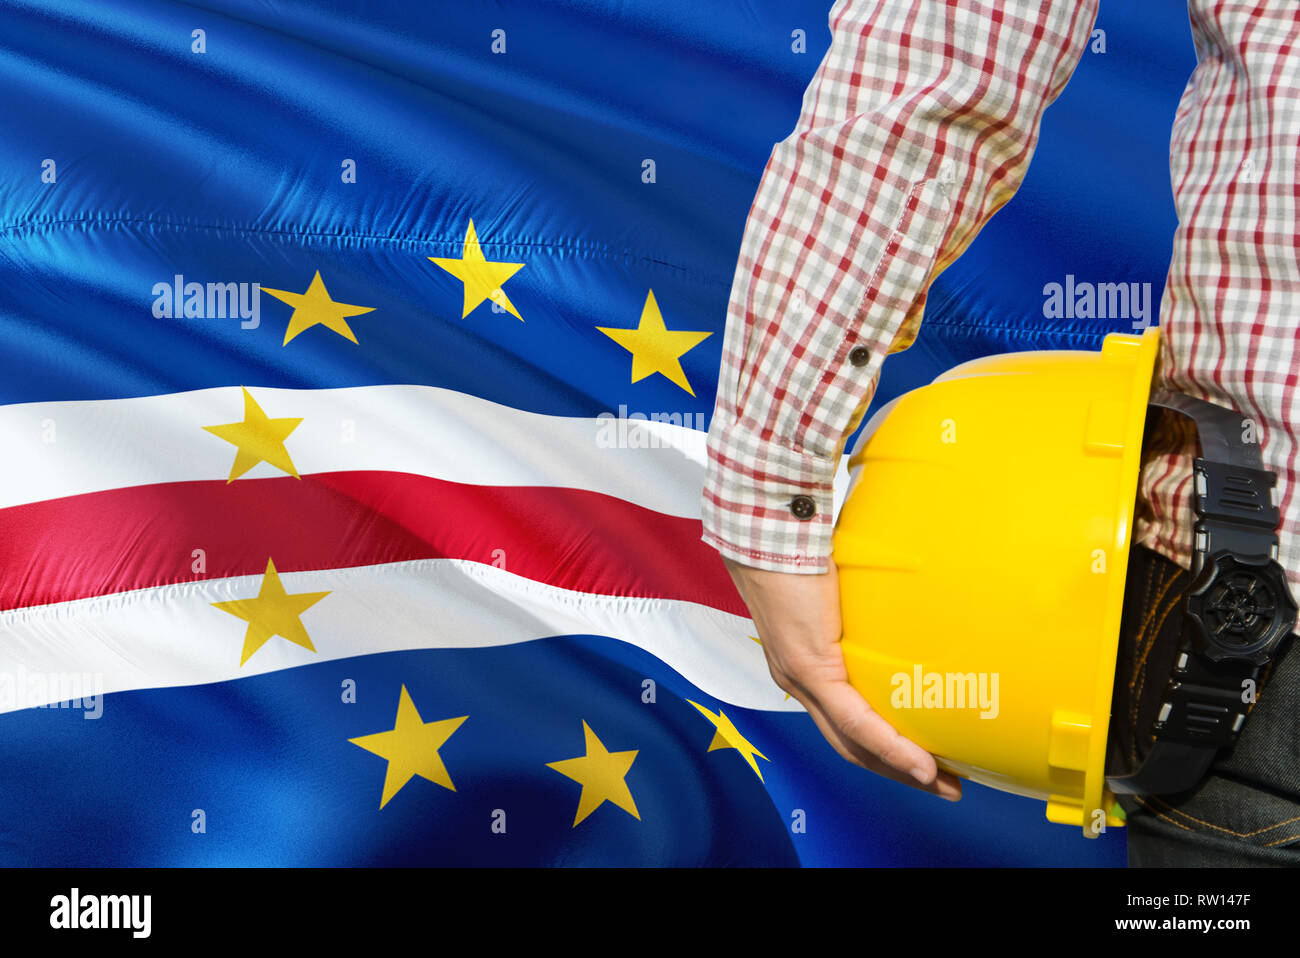 Engineer is holding yellow safety helmet with waving Cape Verde flag background. Construction and building concept. - Stock Image